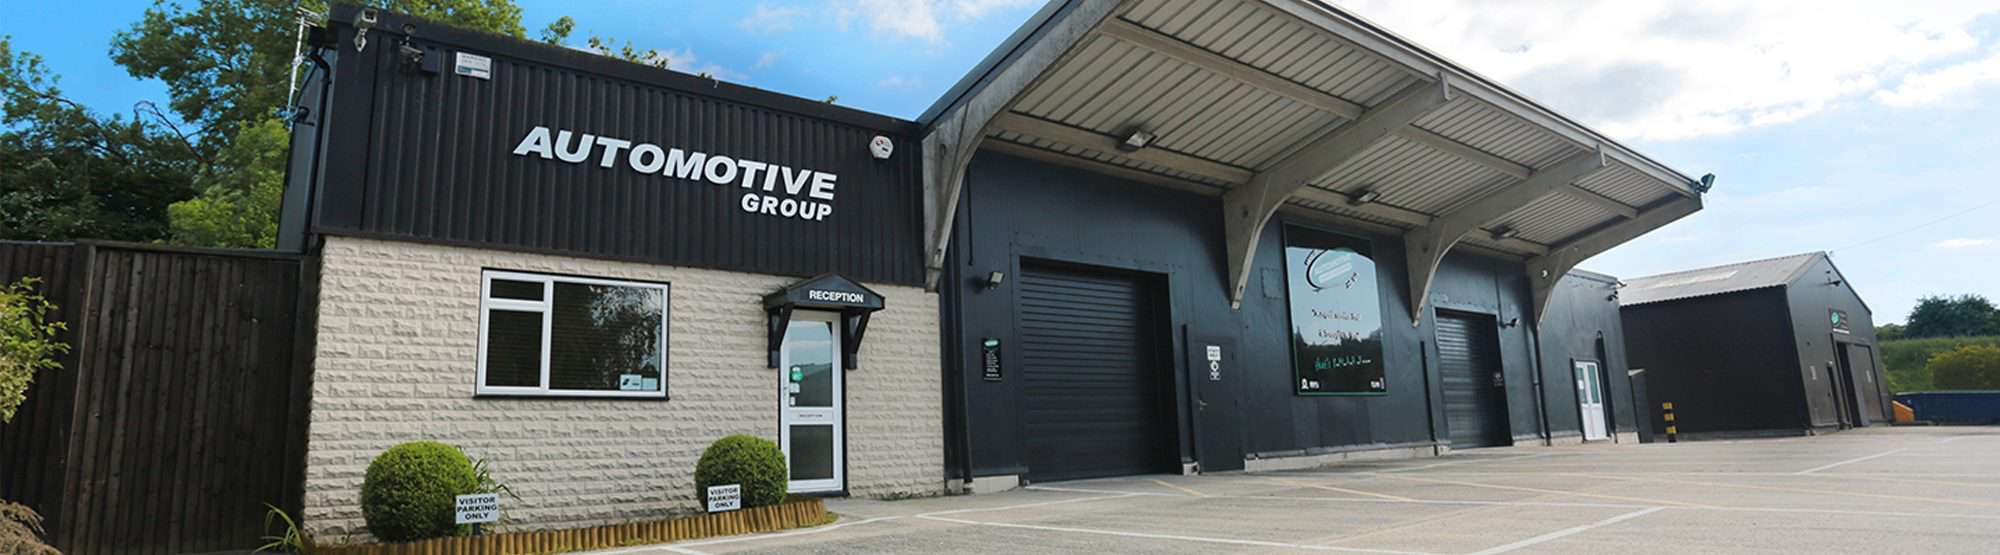 Automotive Head Office of Smart Repair